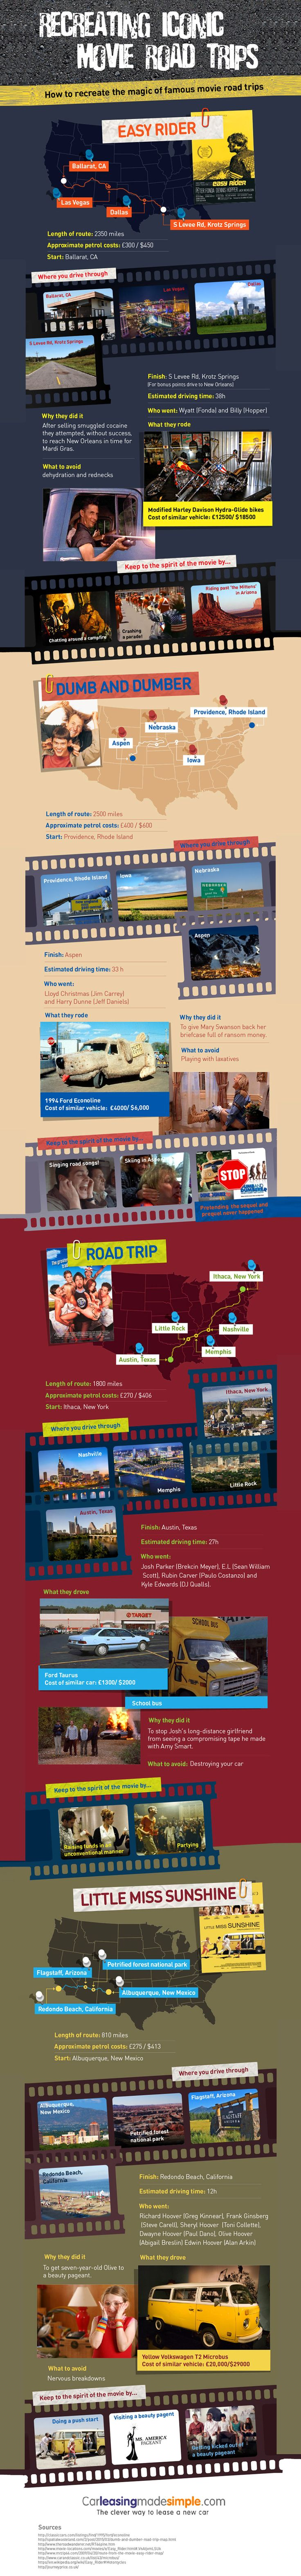 Recreating Iconic Movie Road Trips Infographic. Topic: film, easy rider, dumb and dumber, little miss sunshine, car, travel, rv.